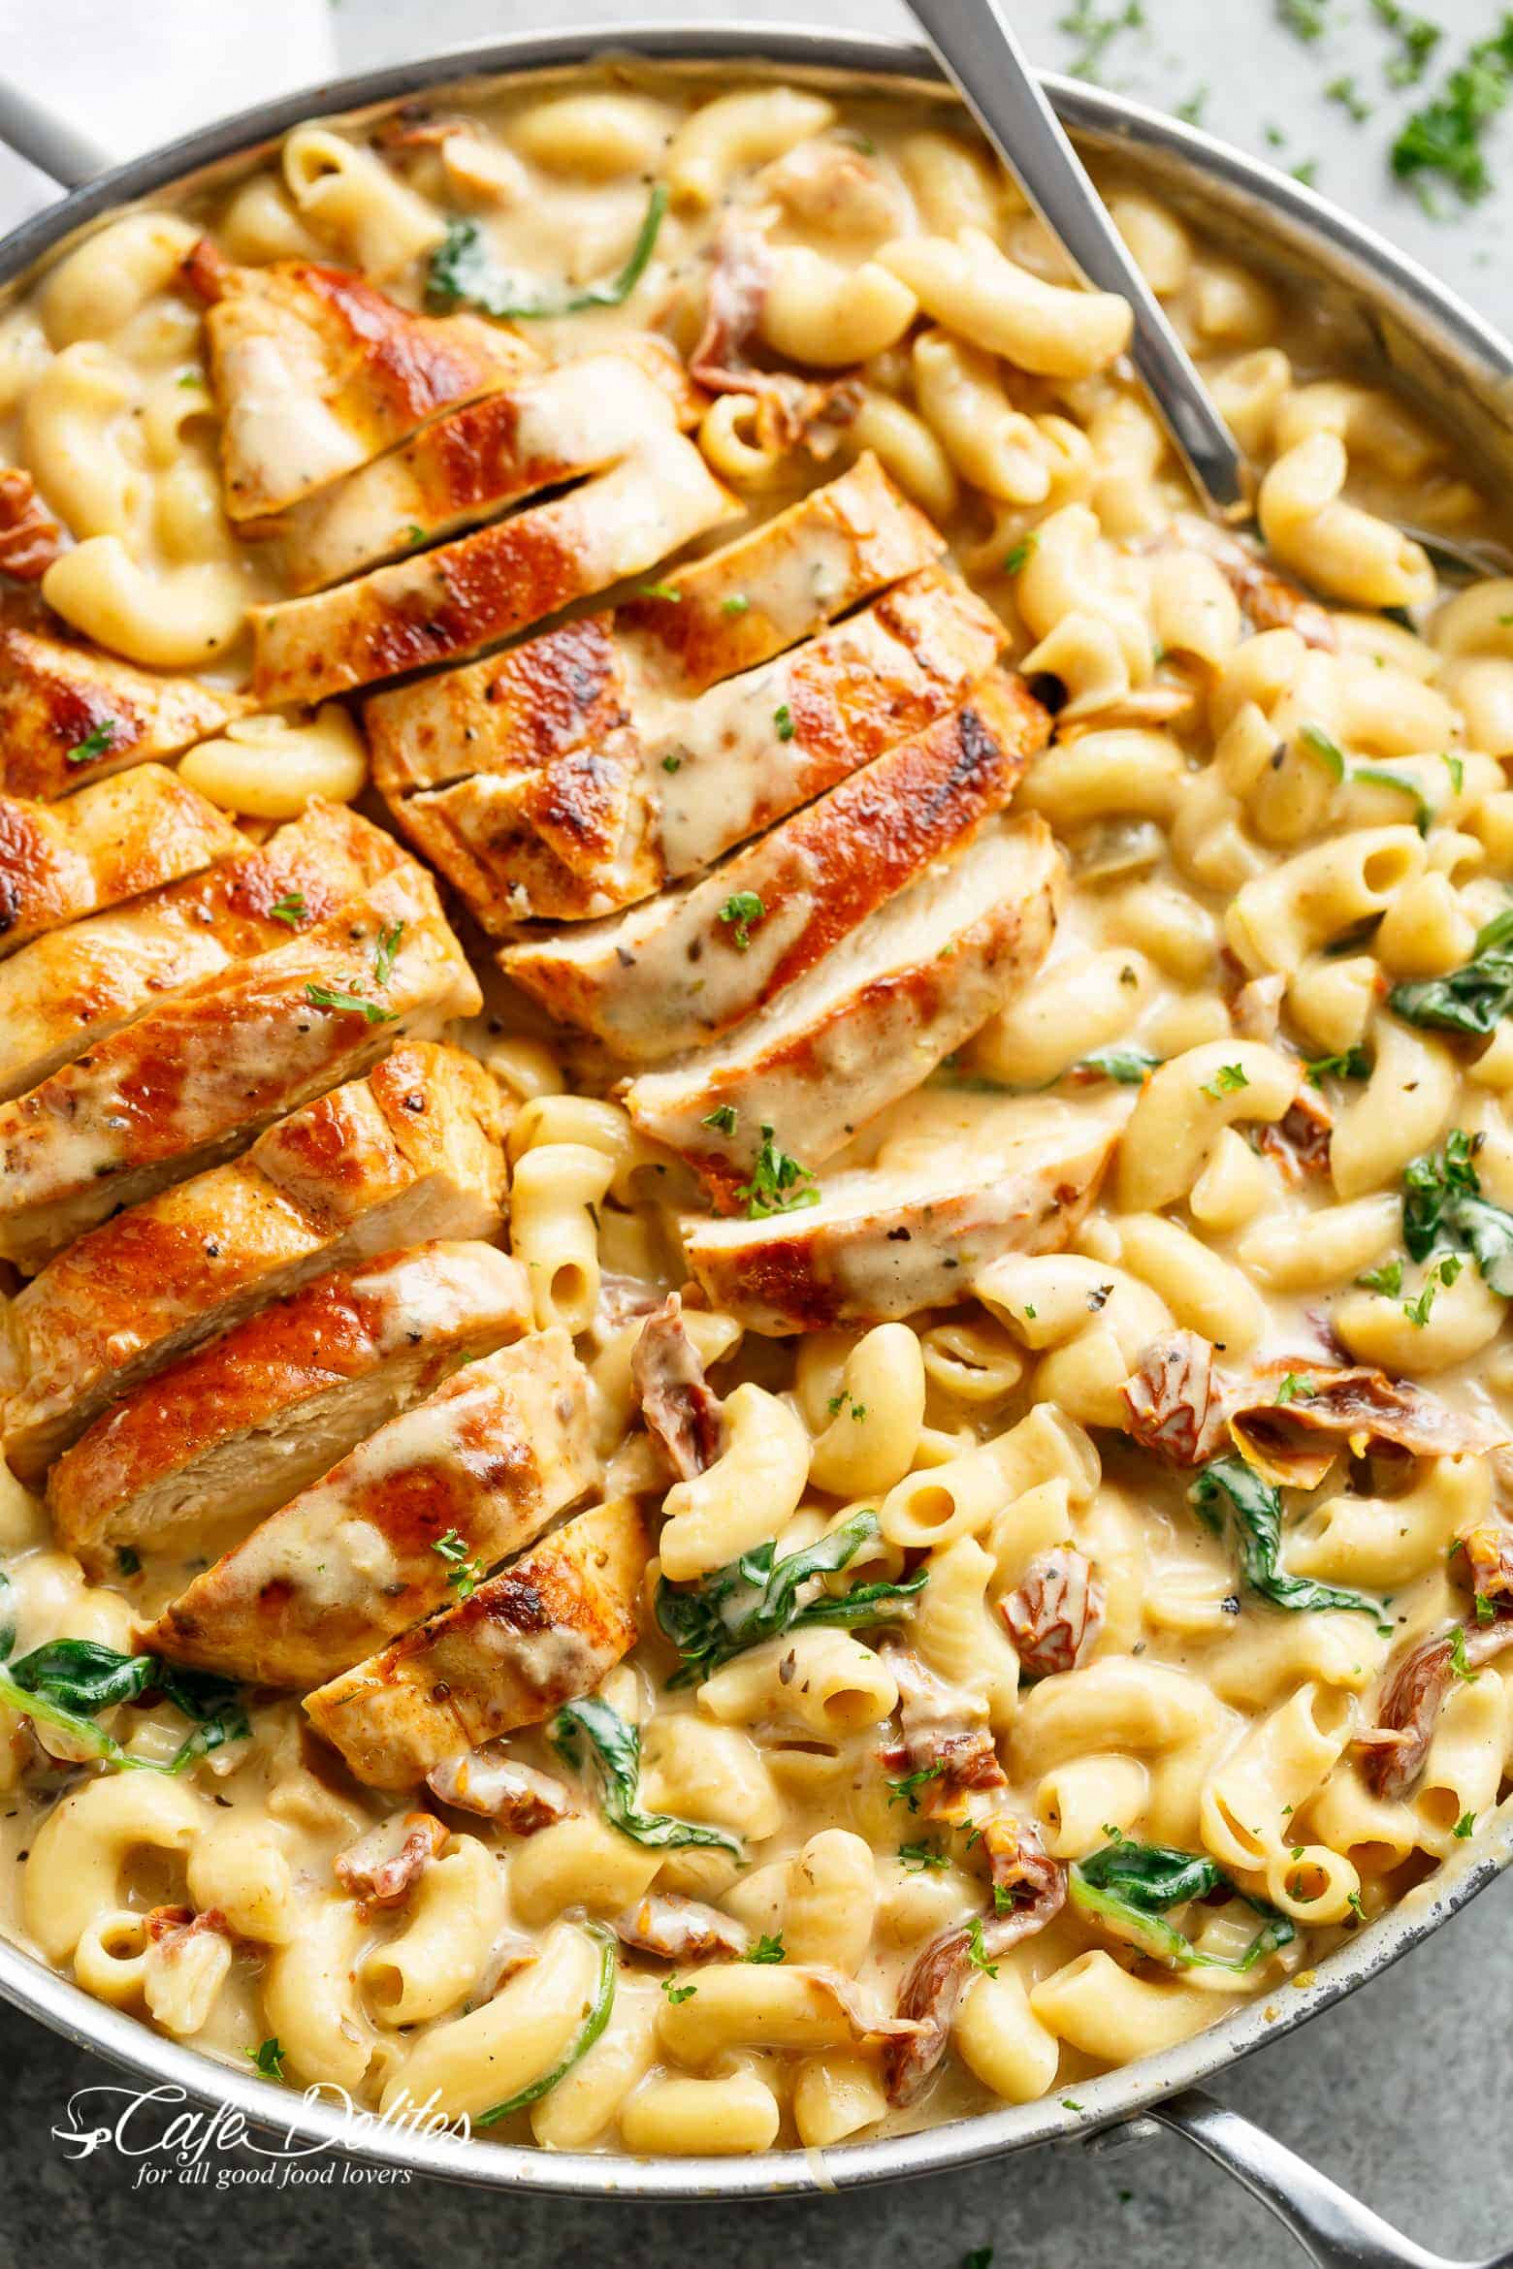 Tuscan Chicken Mac And Cheese (ONE POT, STOVE TOP) - dinner recipes one pot